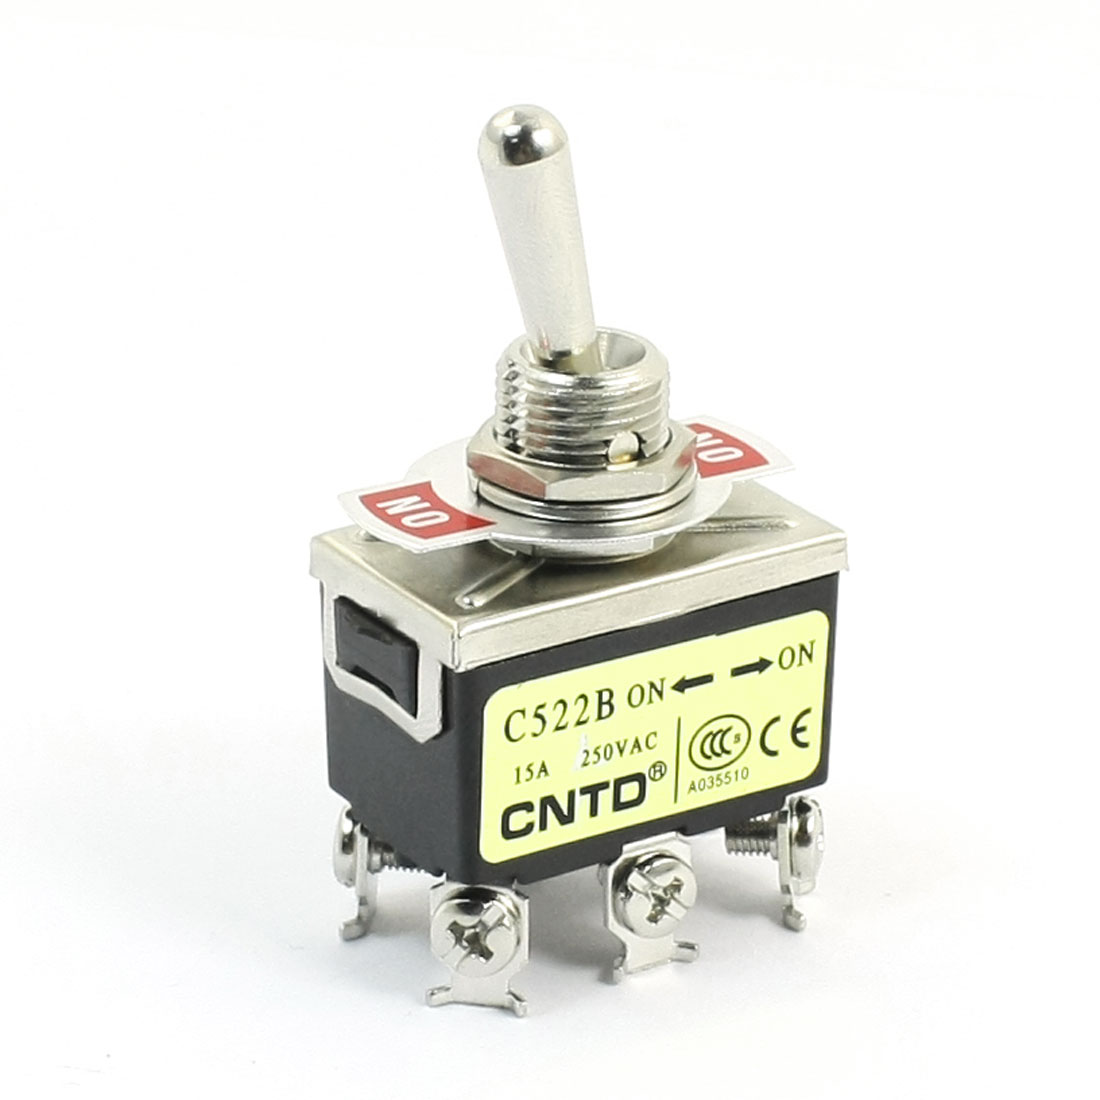 AC250V 15A DPDT 2 Positions 6 Screw Terminals Toggle Switch for Switching Light